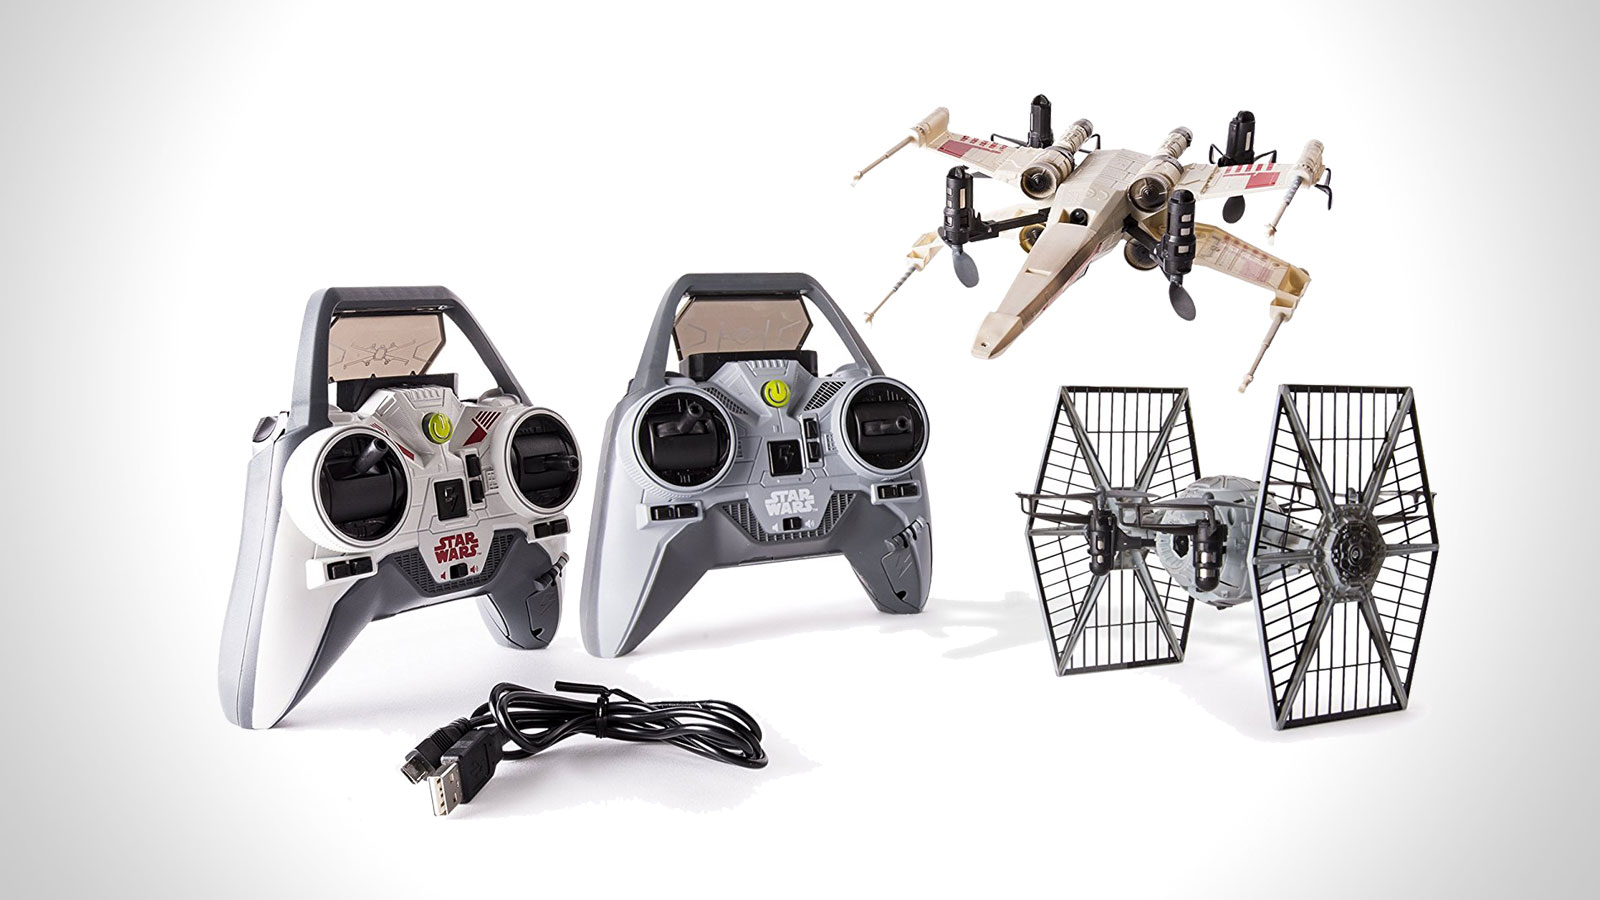 Star Wars X-wing vs. TIE Fighter Drone Battle Set | gifts for men | the best star wars gifts